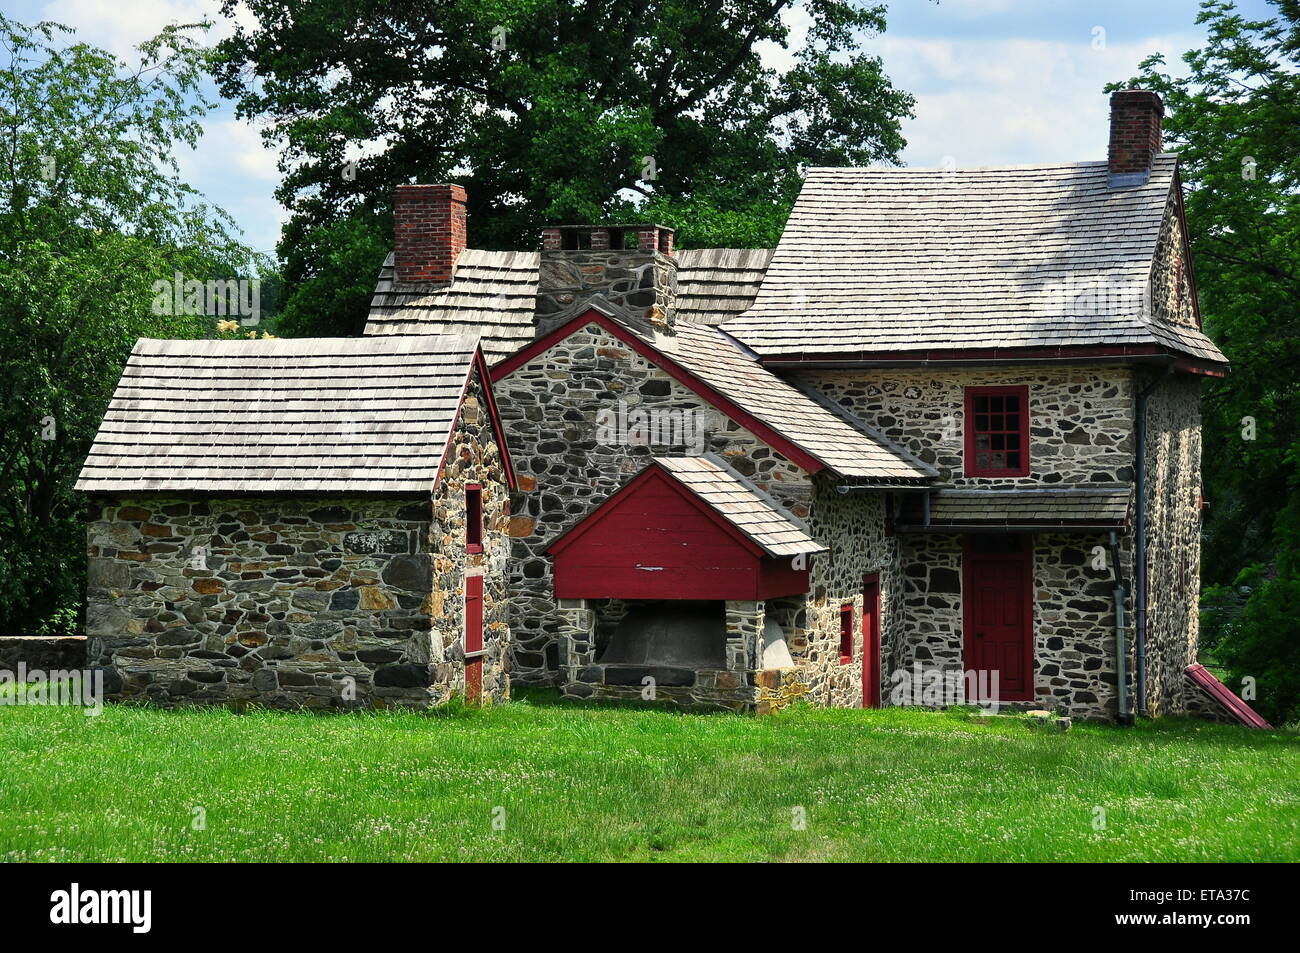 Chadds Ford, Pennsylvania: The Gideon Gilpin House used by the Marquis de Lafayette as his headquarters  * - Stock Image